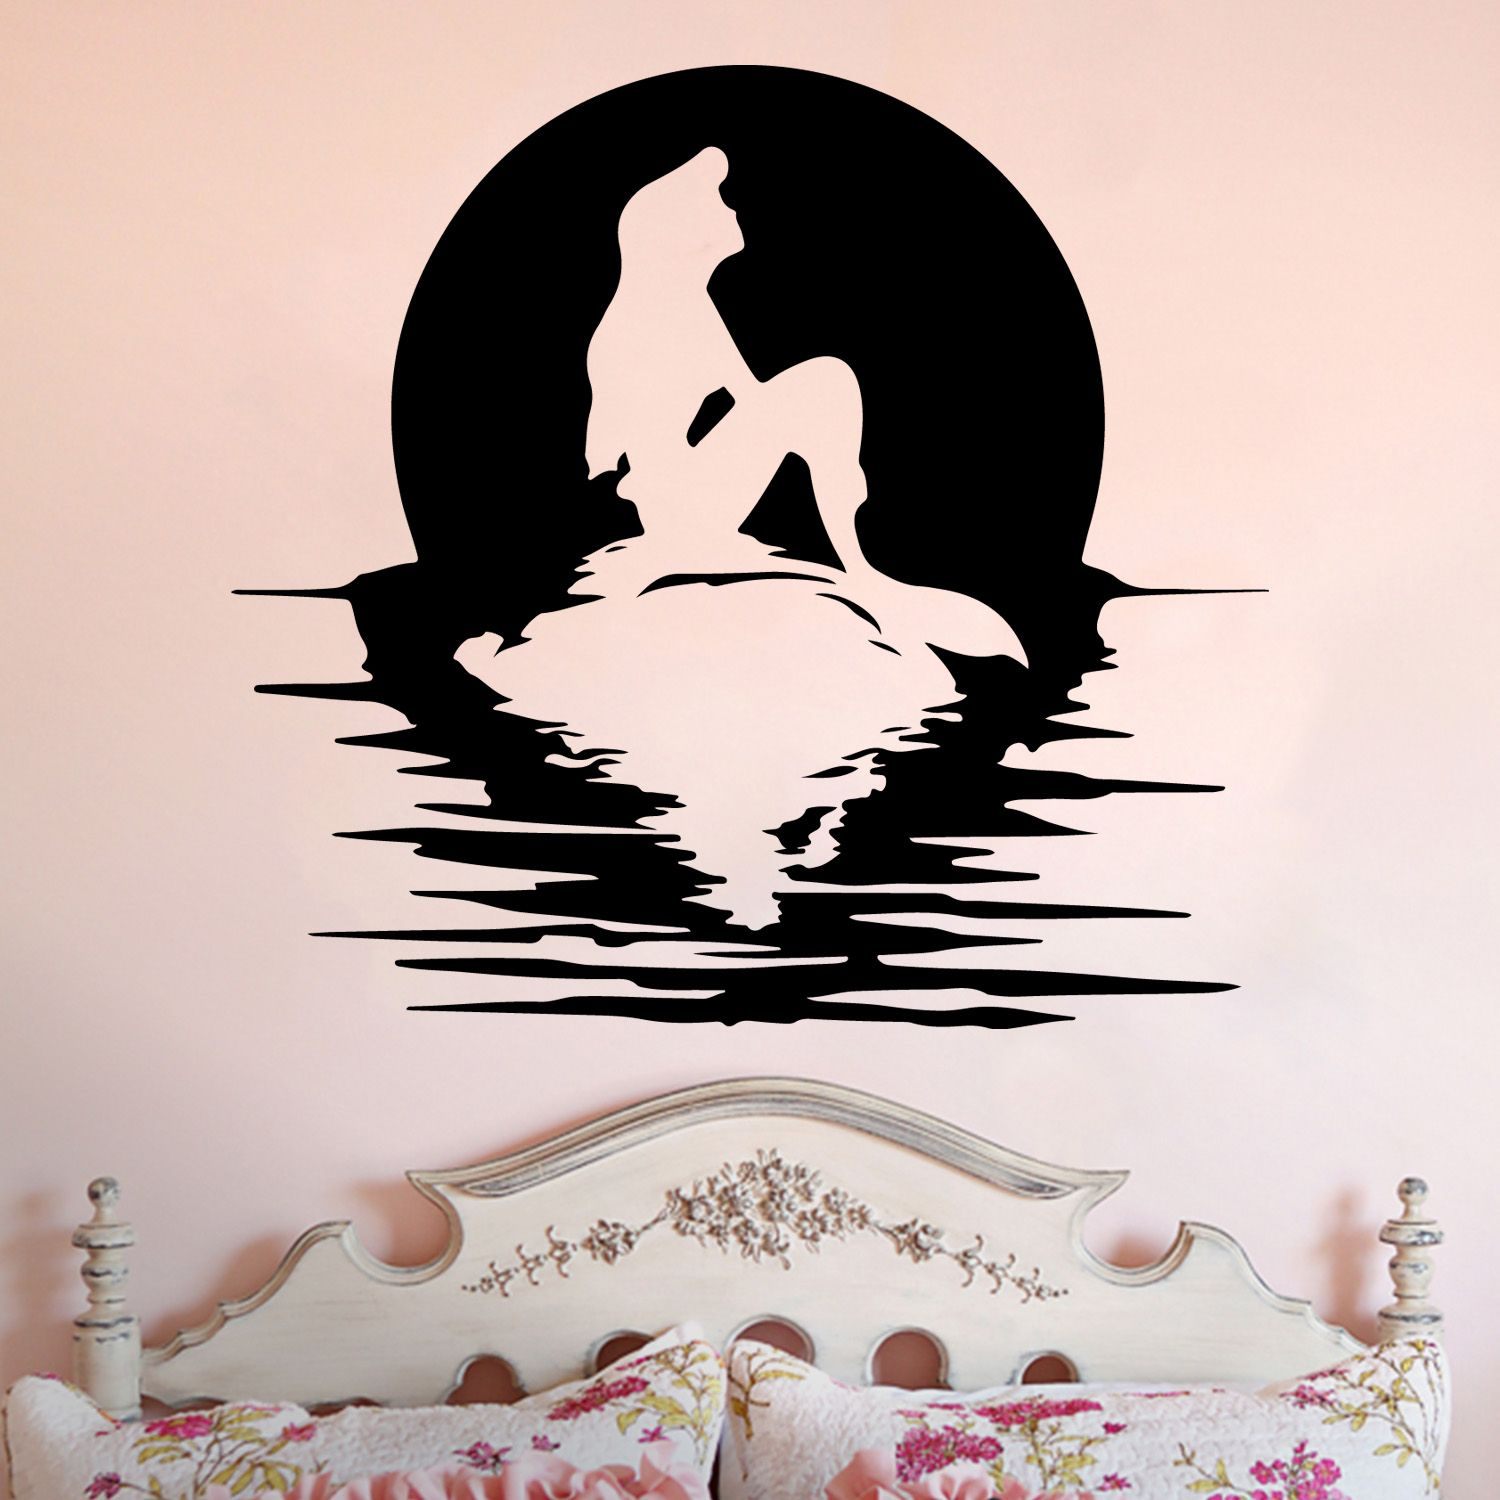 Ariel Full Moon Silhouette Little Mermaid Inspired Vinyl Wall Decal